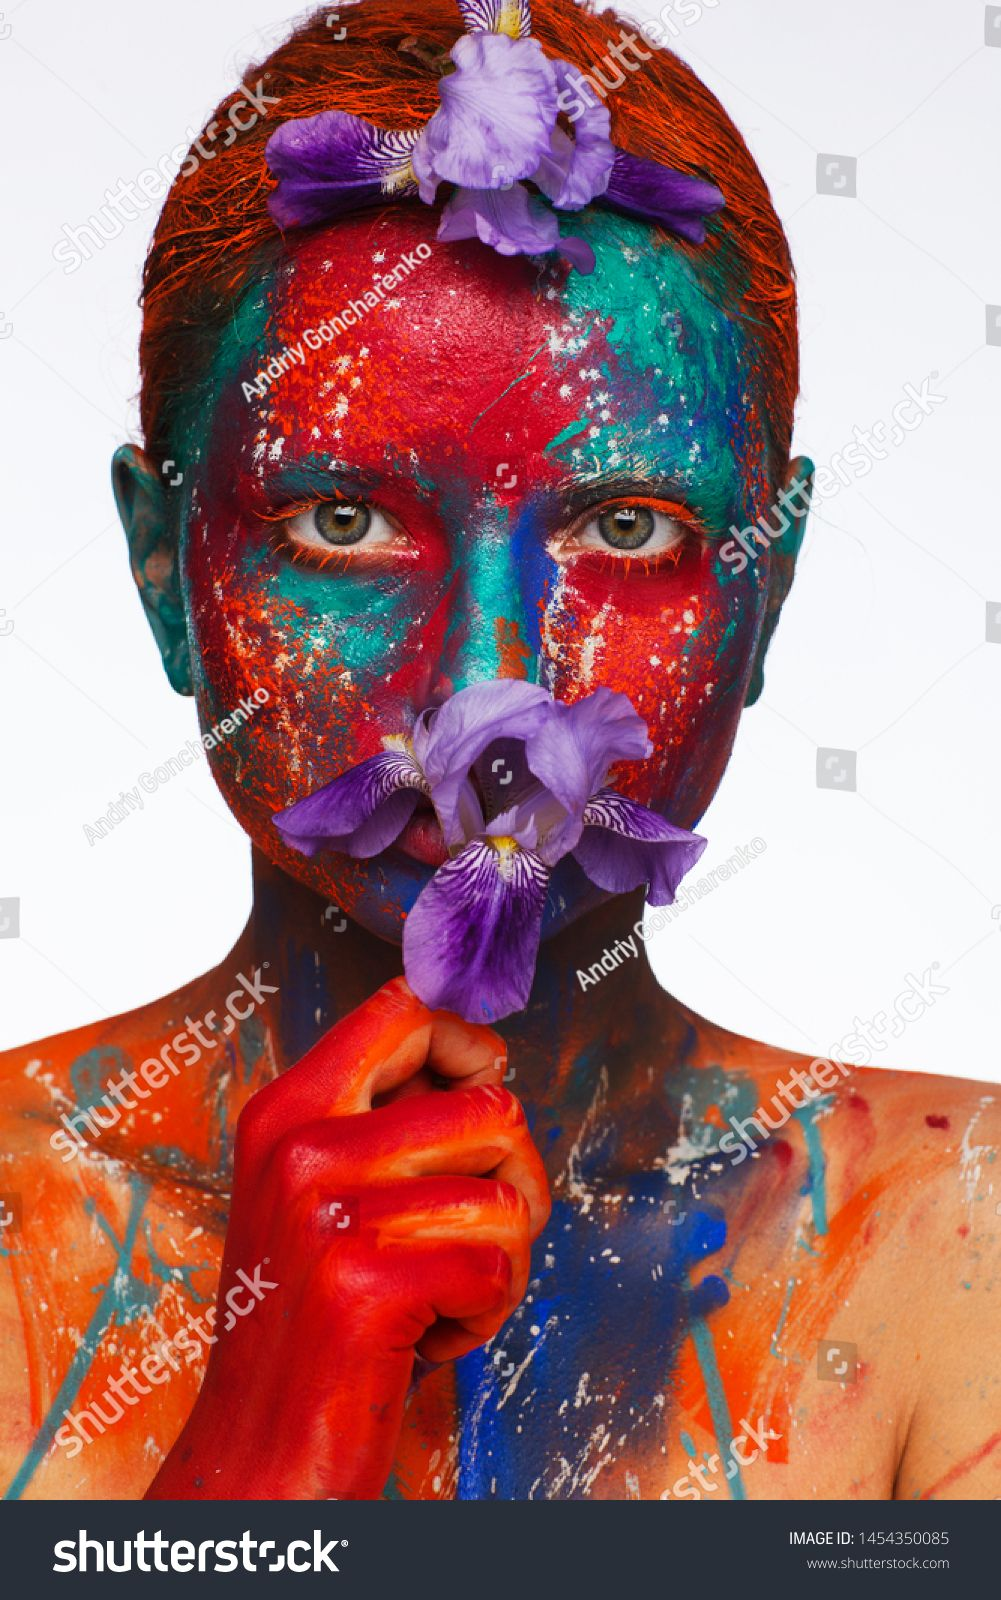 Creative fantastic makeup using colorful paints on the